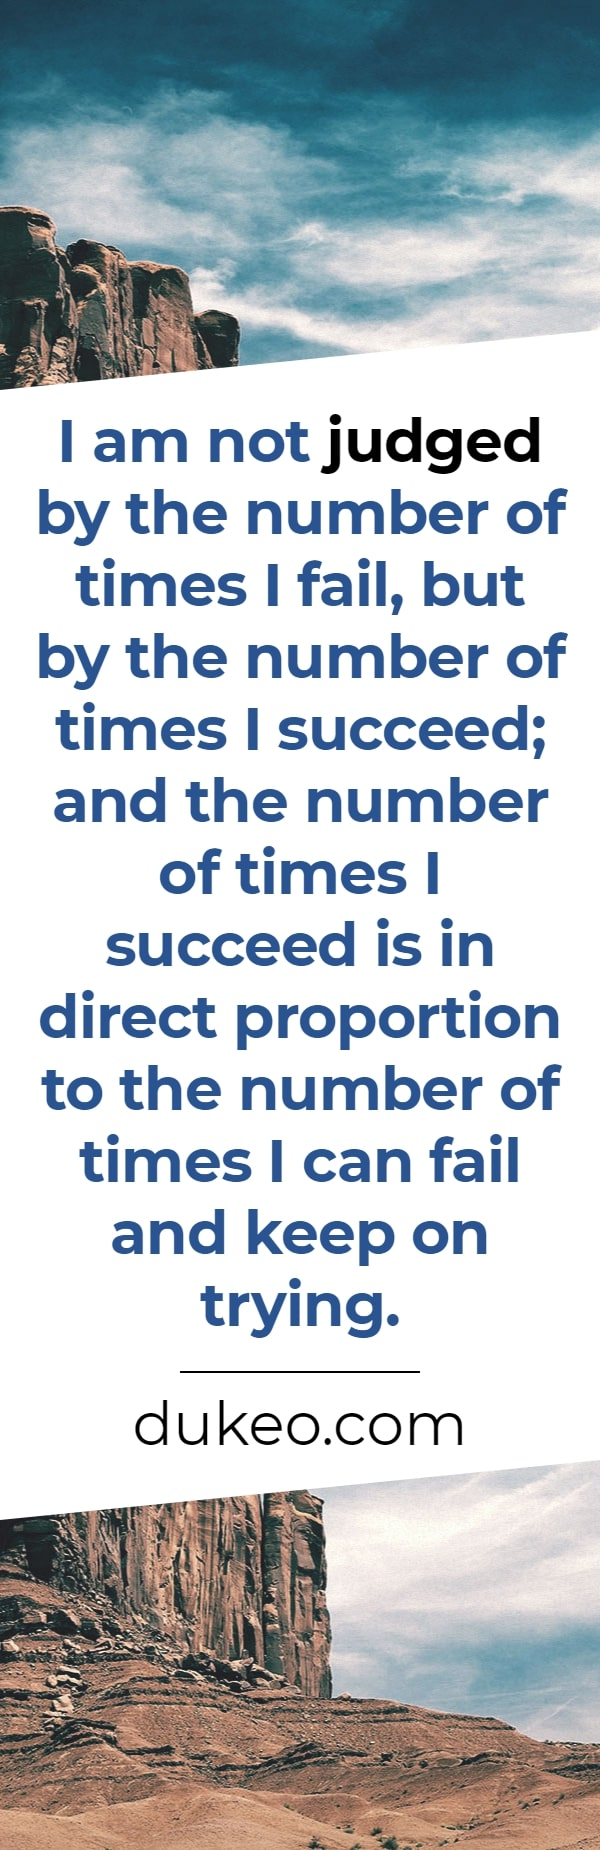 I am not judged by the number of times I fail, but by the number of times I succeed; and the number of times I succeed is in direct proportion to the number of times I can fail and keep on trying.